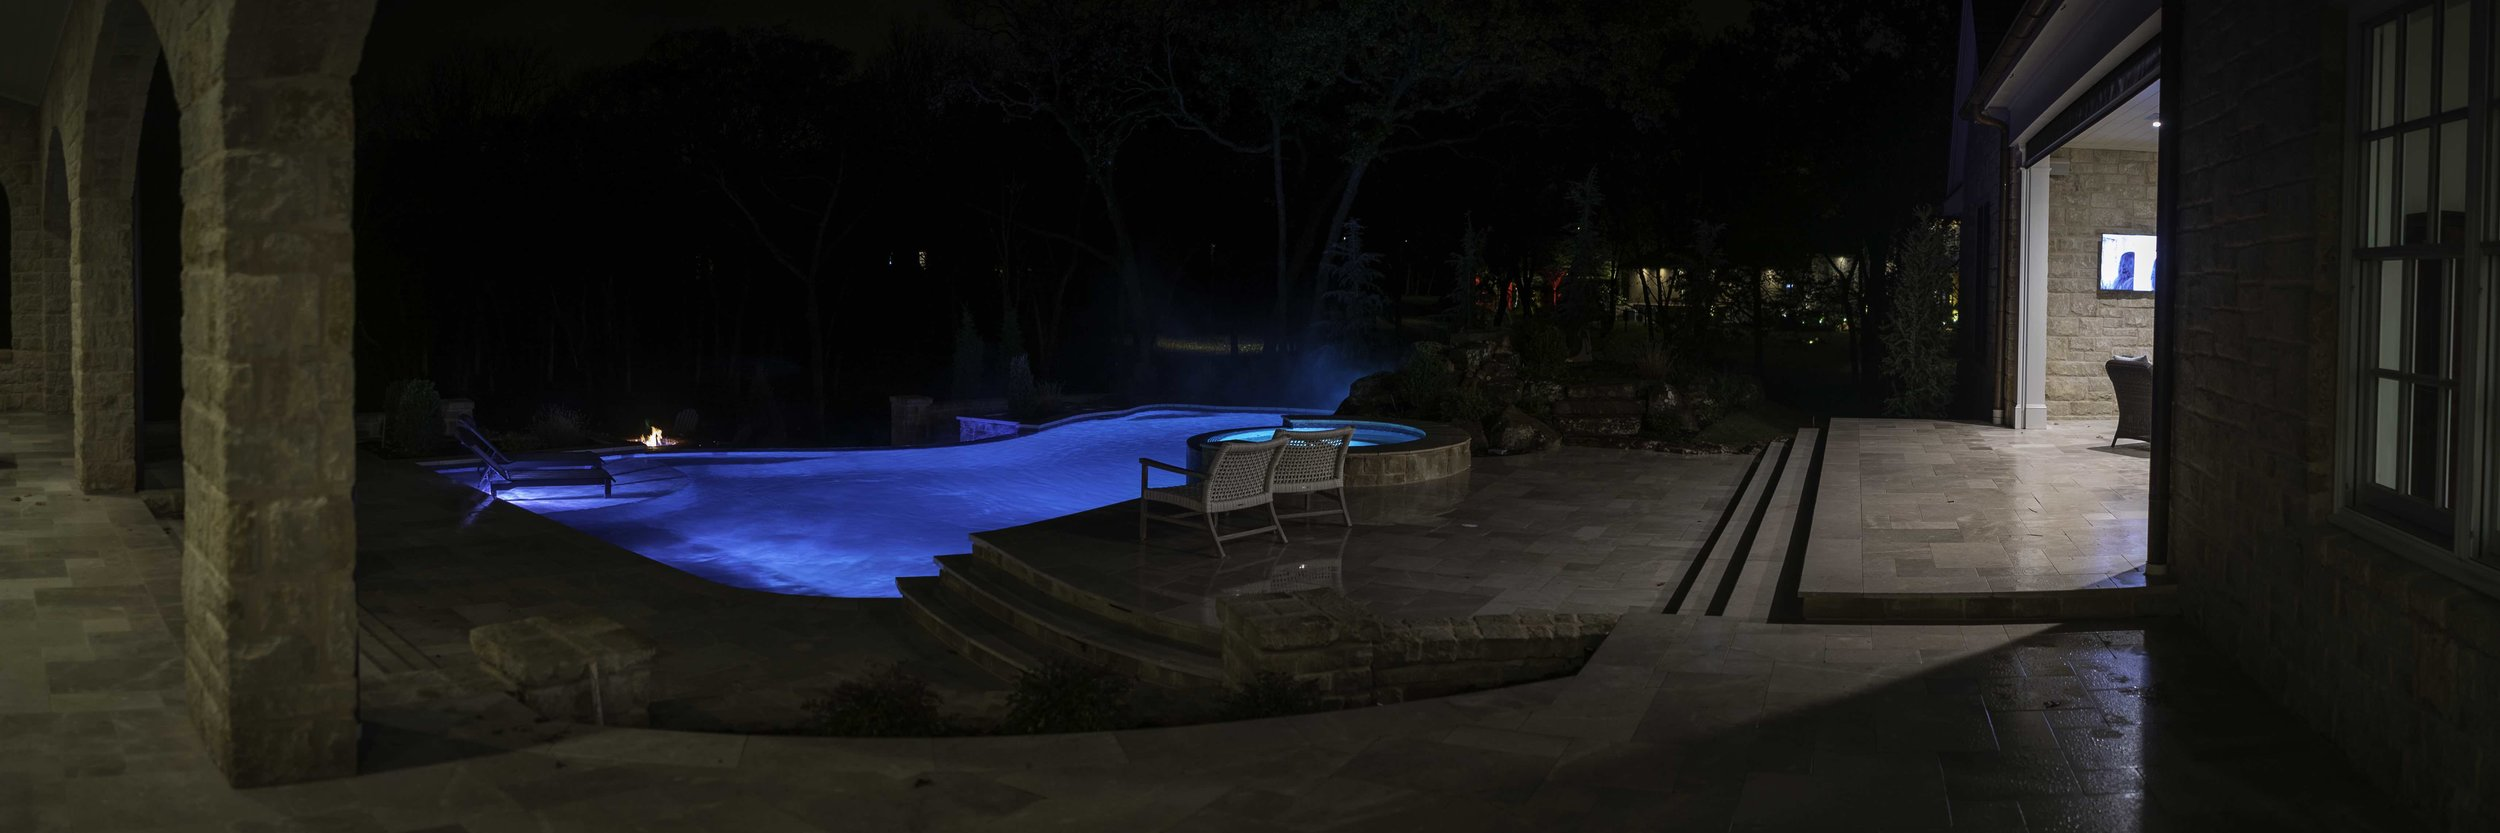 Myers Pool | evening | color | ANDREW G | super wide panorama | 2x3 | Print Ready - 35.jpg